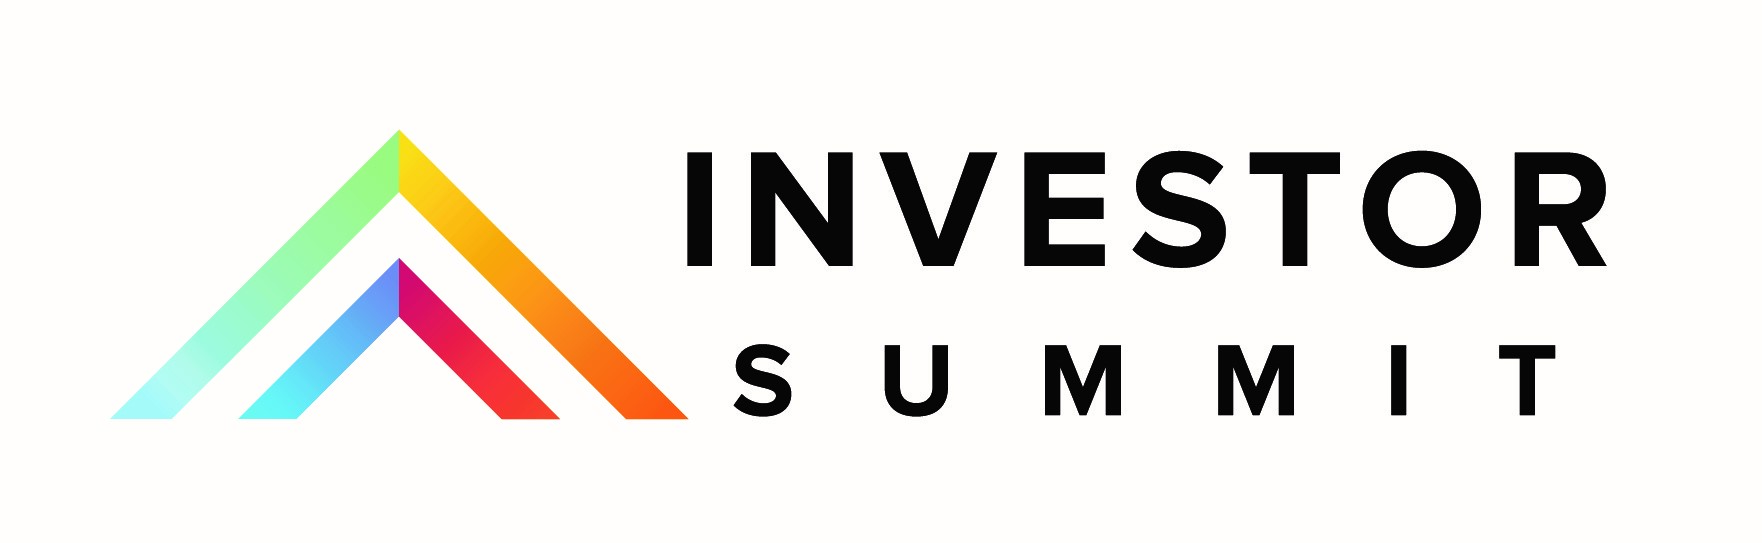 The Investor Summit Group